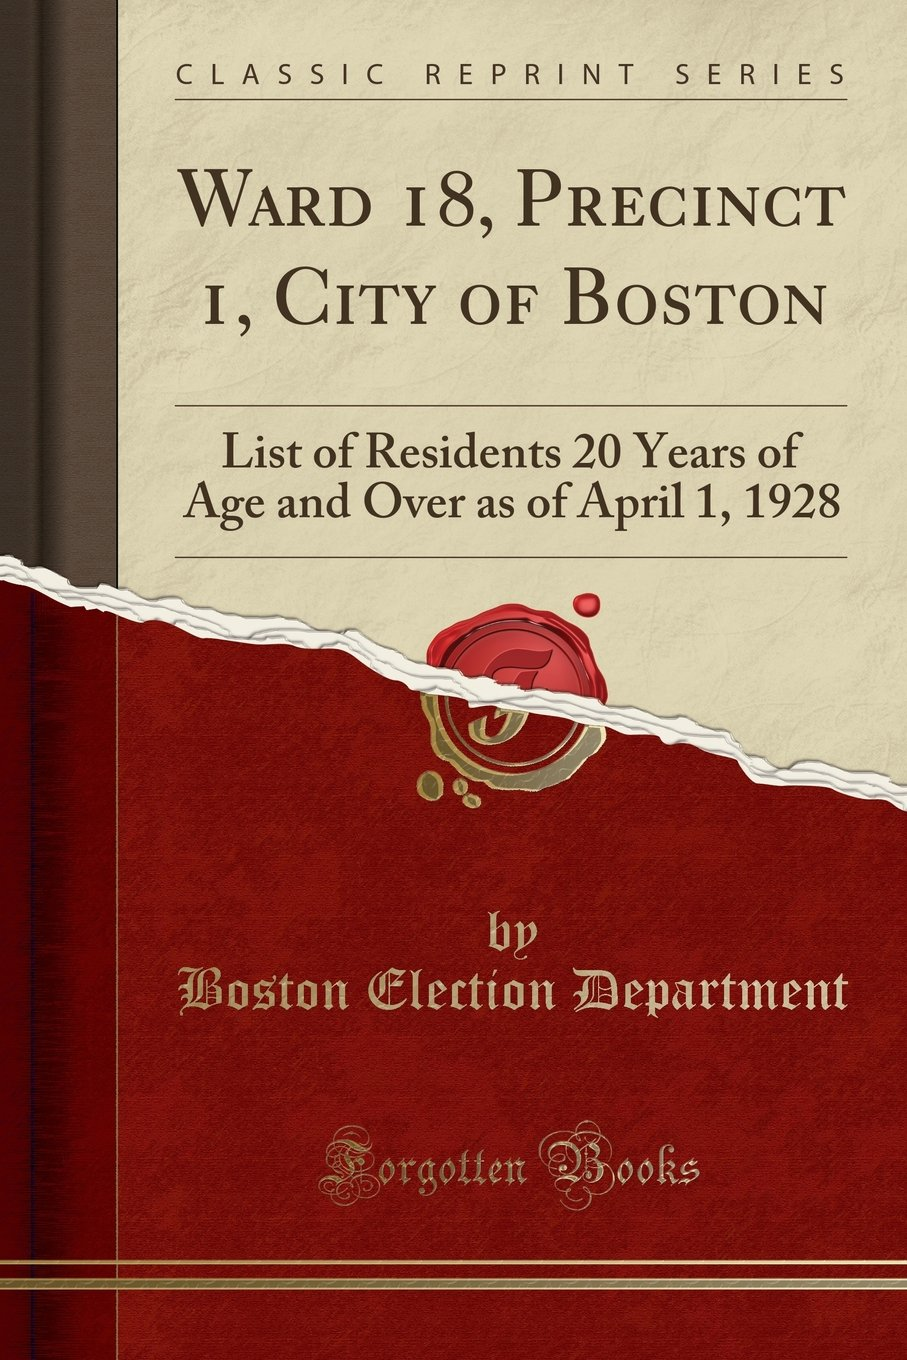 Download Ward 18, Precinct 1, City of Boston: List of Residents 20 Years of Age and Over as of April 1, 1928 (Classic Reprint) PDF